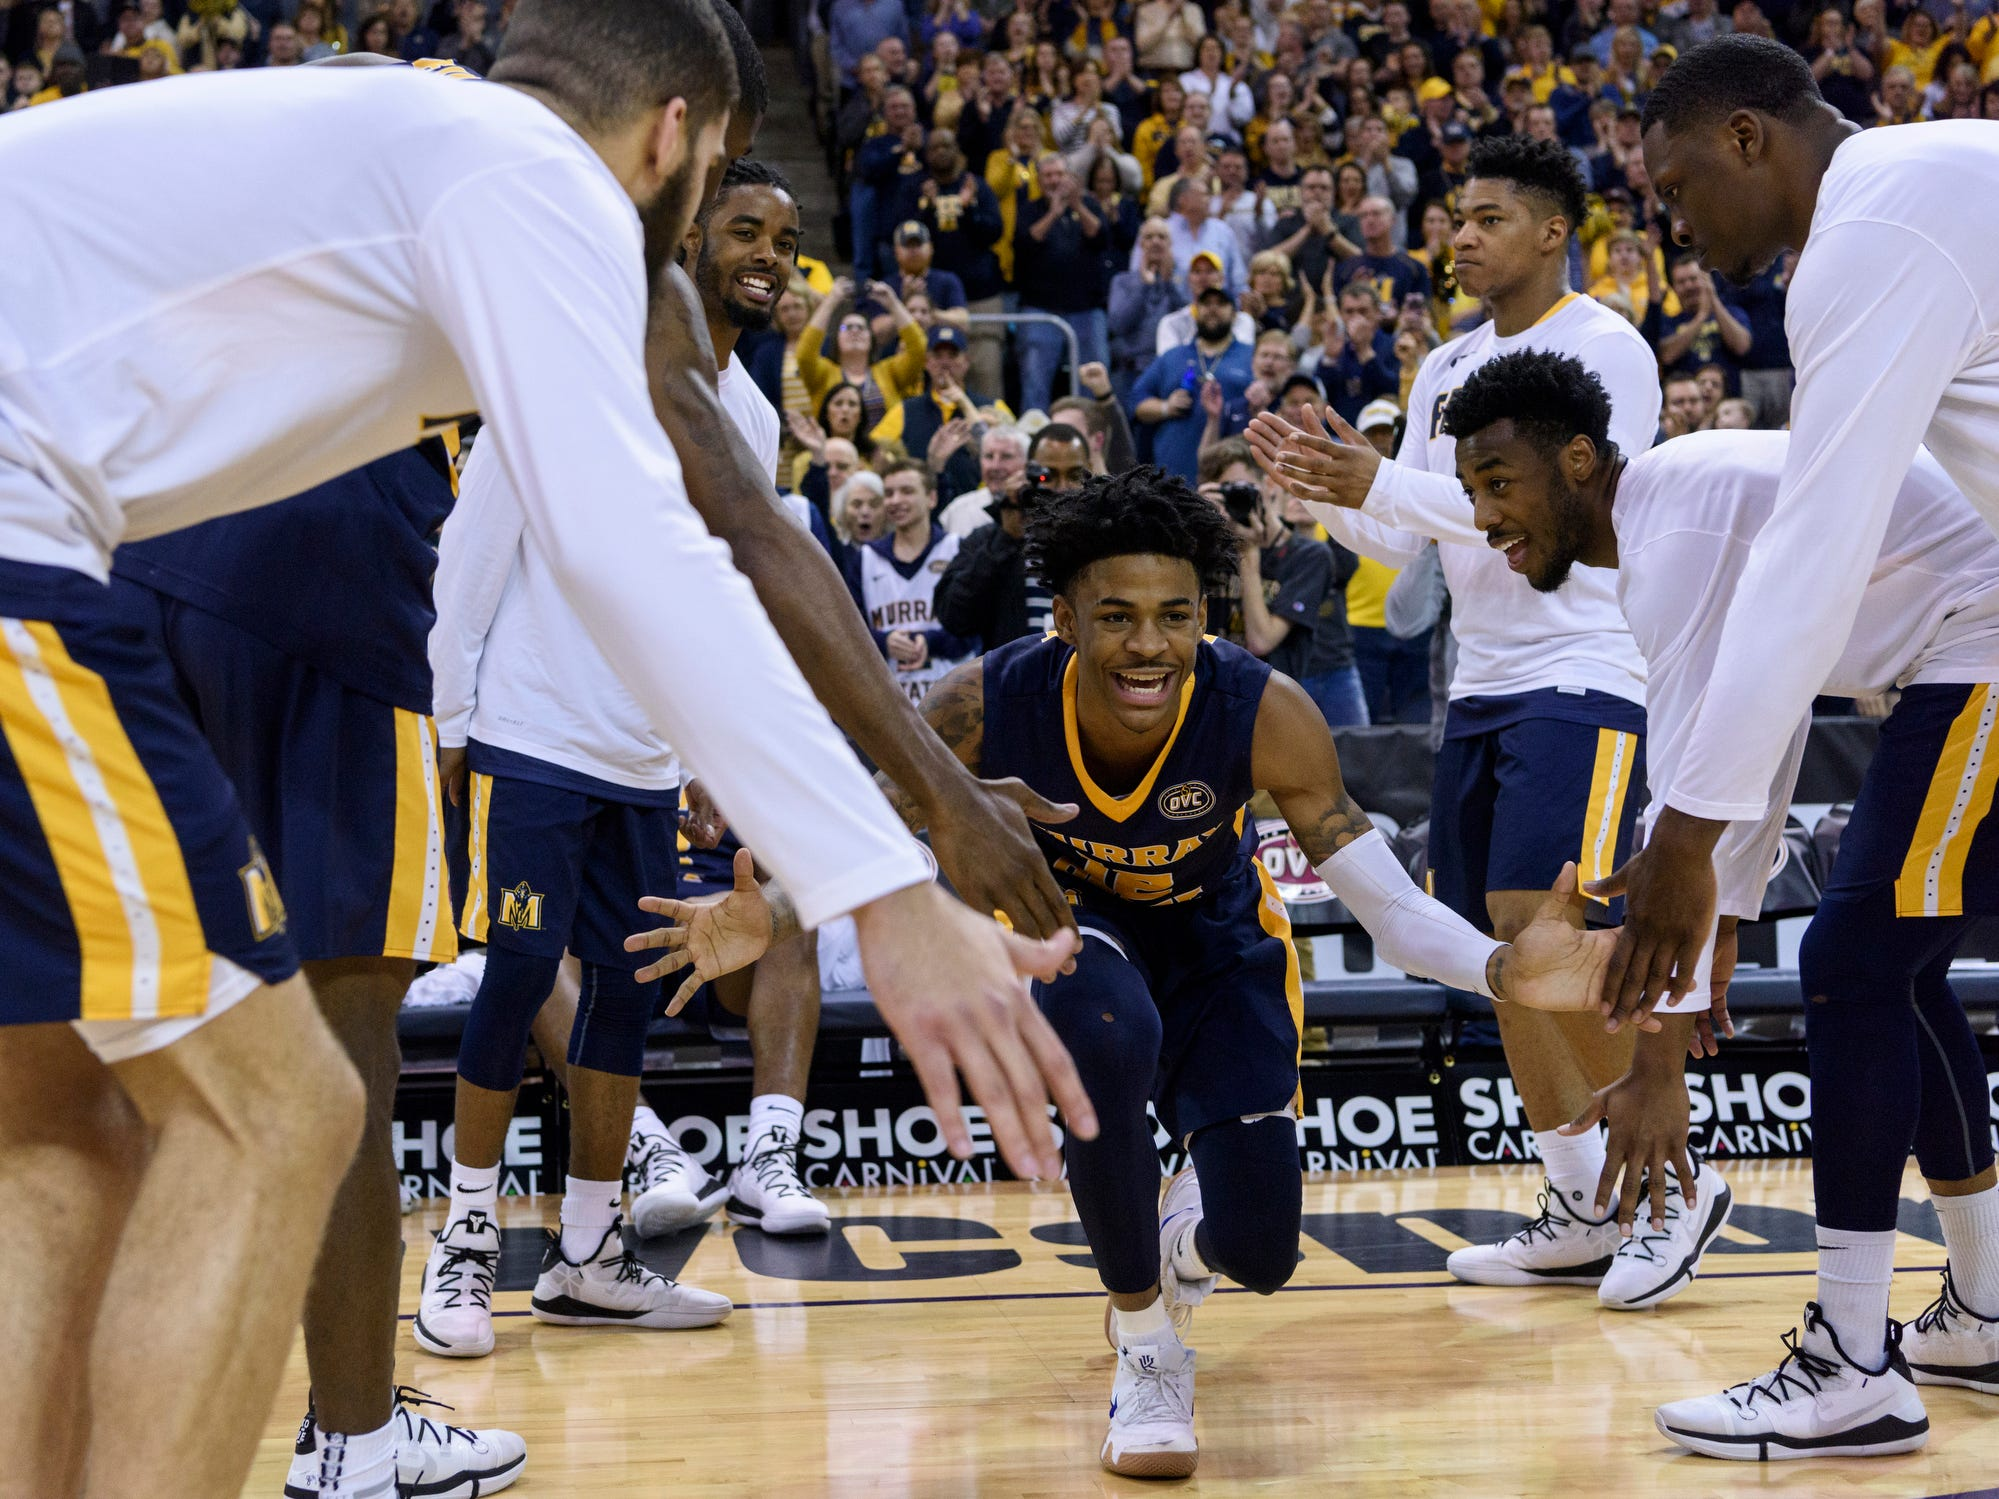 Murray State's Ja Morant (12) is announced as a starter before the  Ohio Valley Conference men's basketball championship against the Belmont University Bruins at Ford Center in Evansville, Ind., Saturday, March 9, 2019.